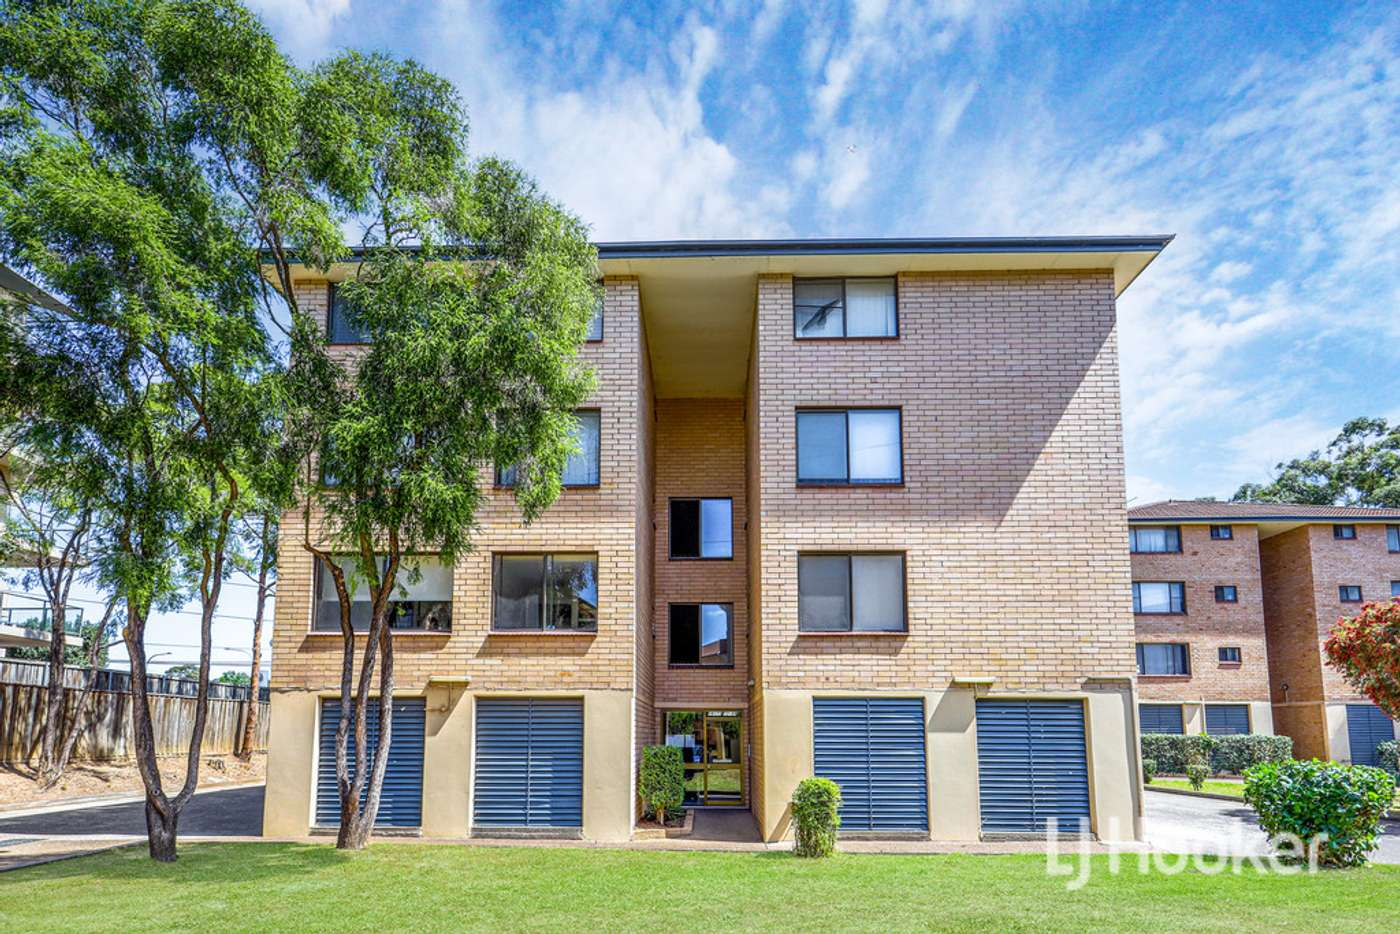 Main view of Homely apartment listing, 81/5 Griffiths Street, Blacktown NSW 2148